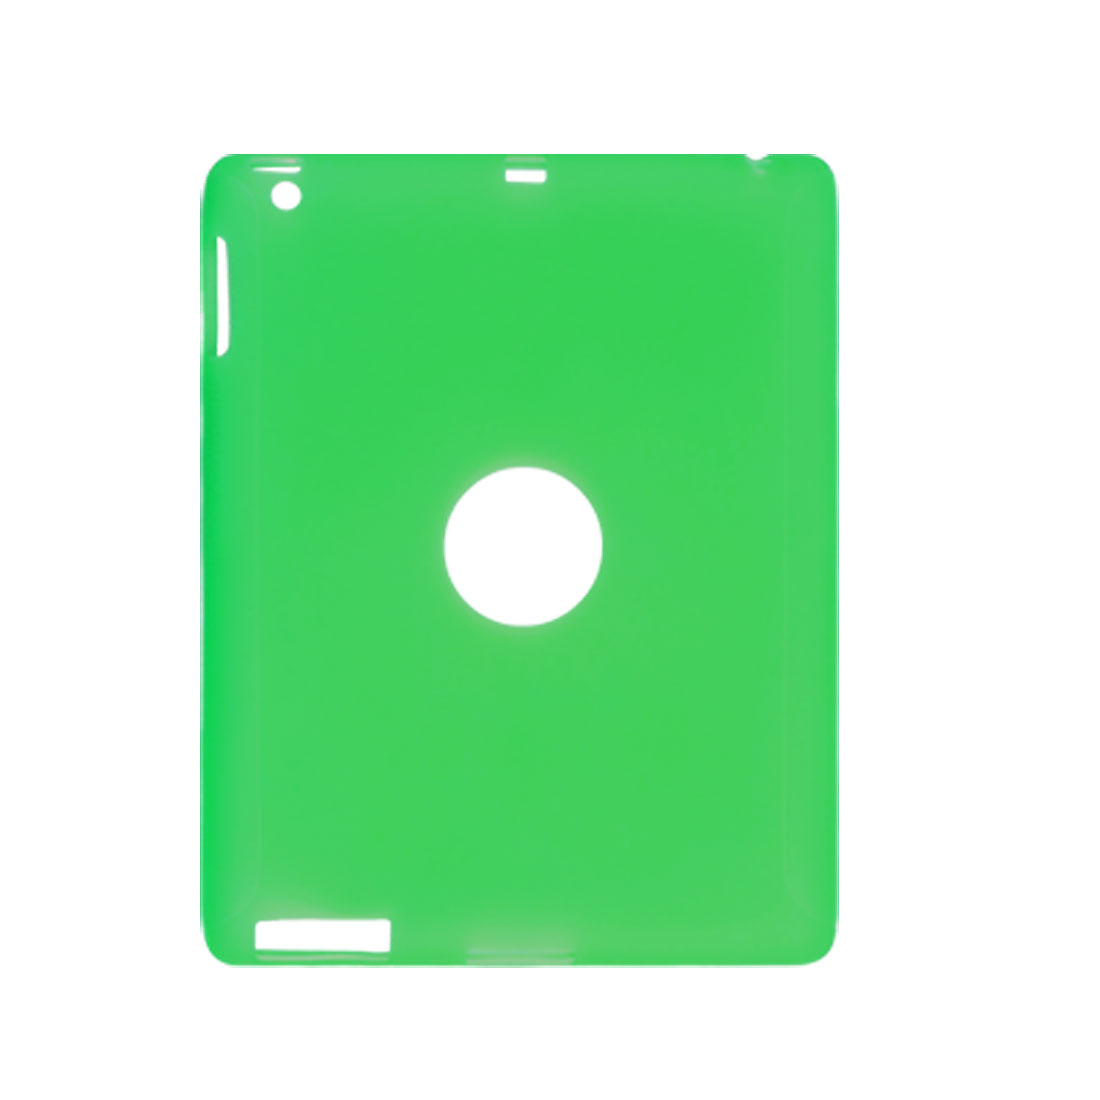 Semi Clear Green Soft Plastic Case Skin for iPad 2 2G